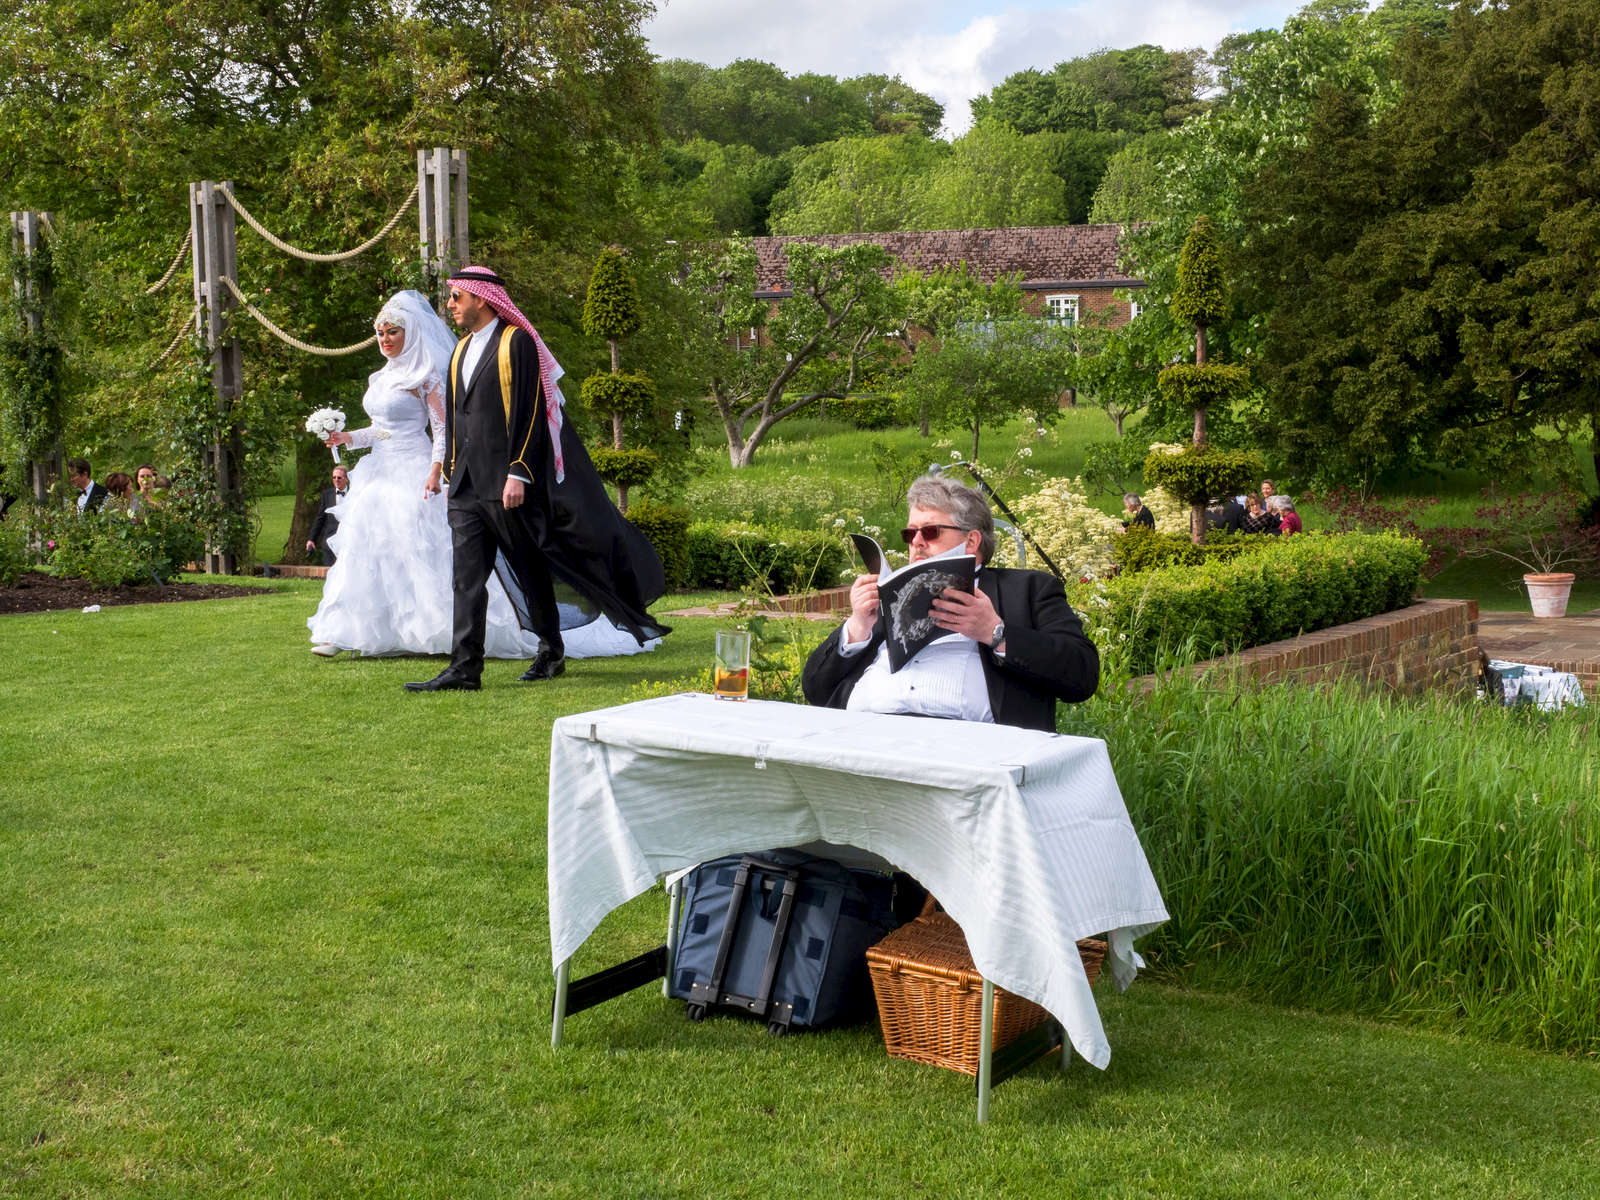 Performers from the opera, Hipermestra by Francesco Cavalli, mingle with visitors ahead of the evening performance. Glyndebourne is an English country house, the site of an opera house that, since 1934, has been the venue for the annual Glyndebourne Festival Opera.